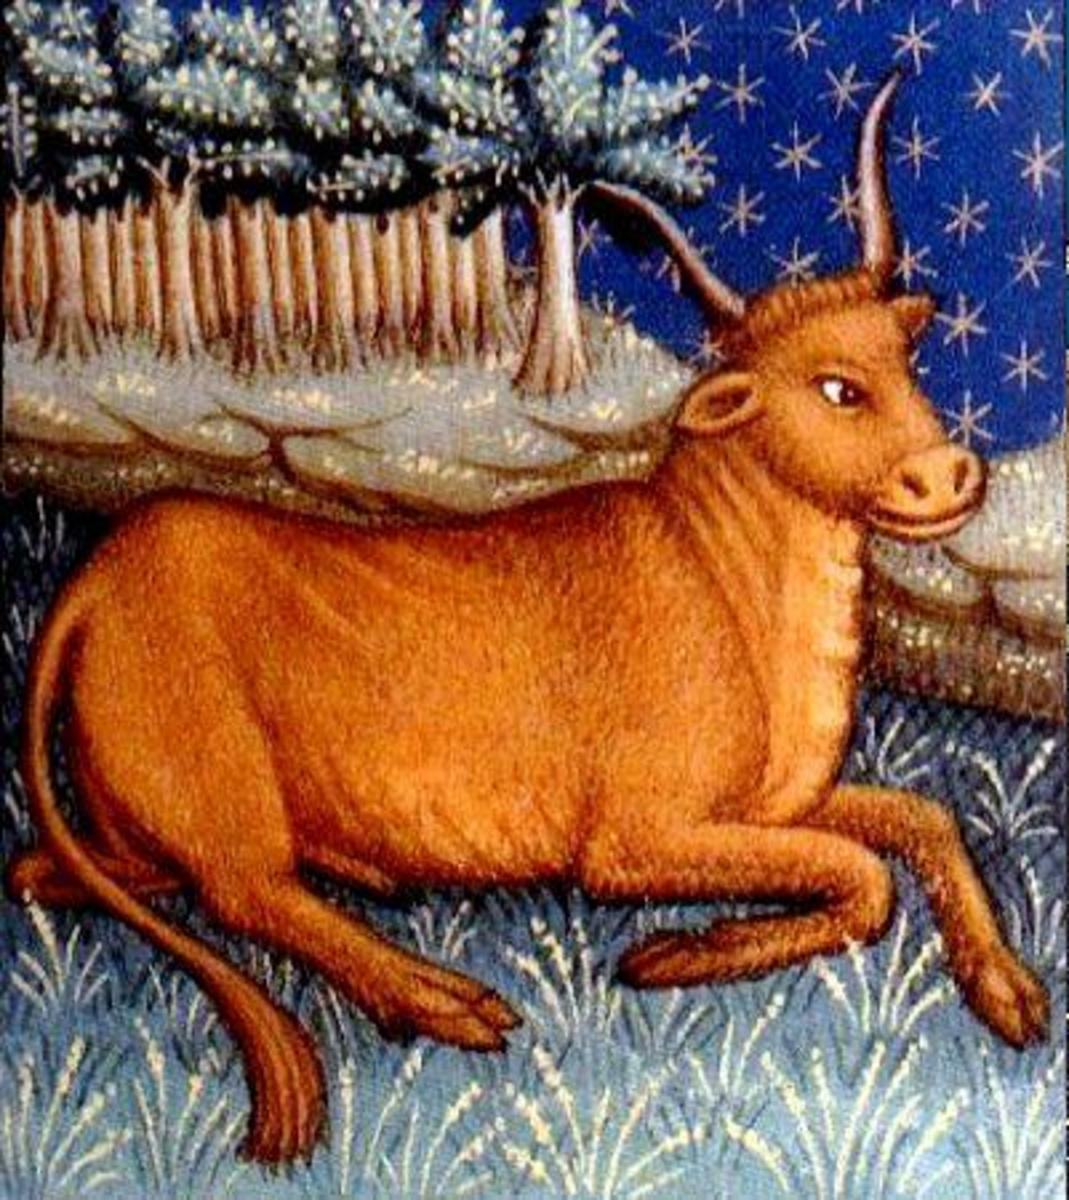 The Bull is an excellent symbol for a Taurus.  Once they dig their hooves in there is no going back.